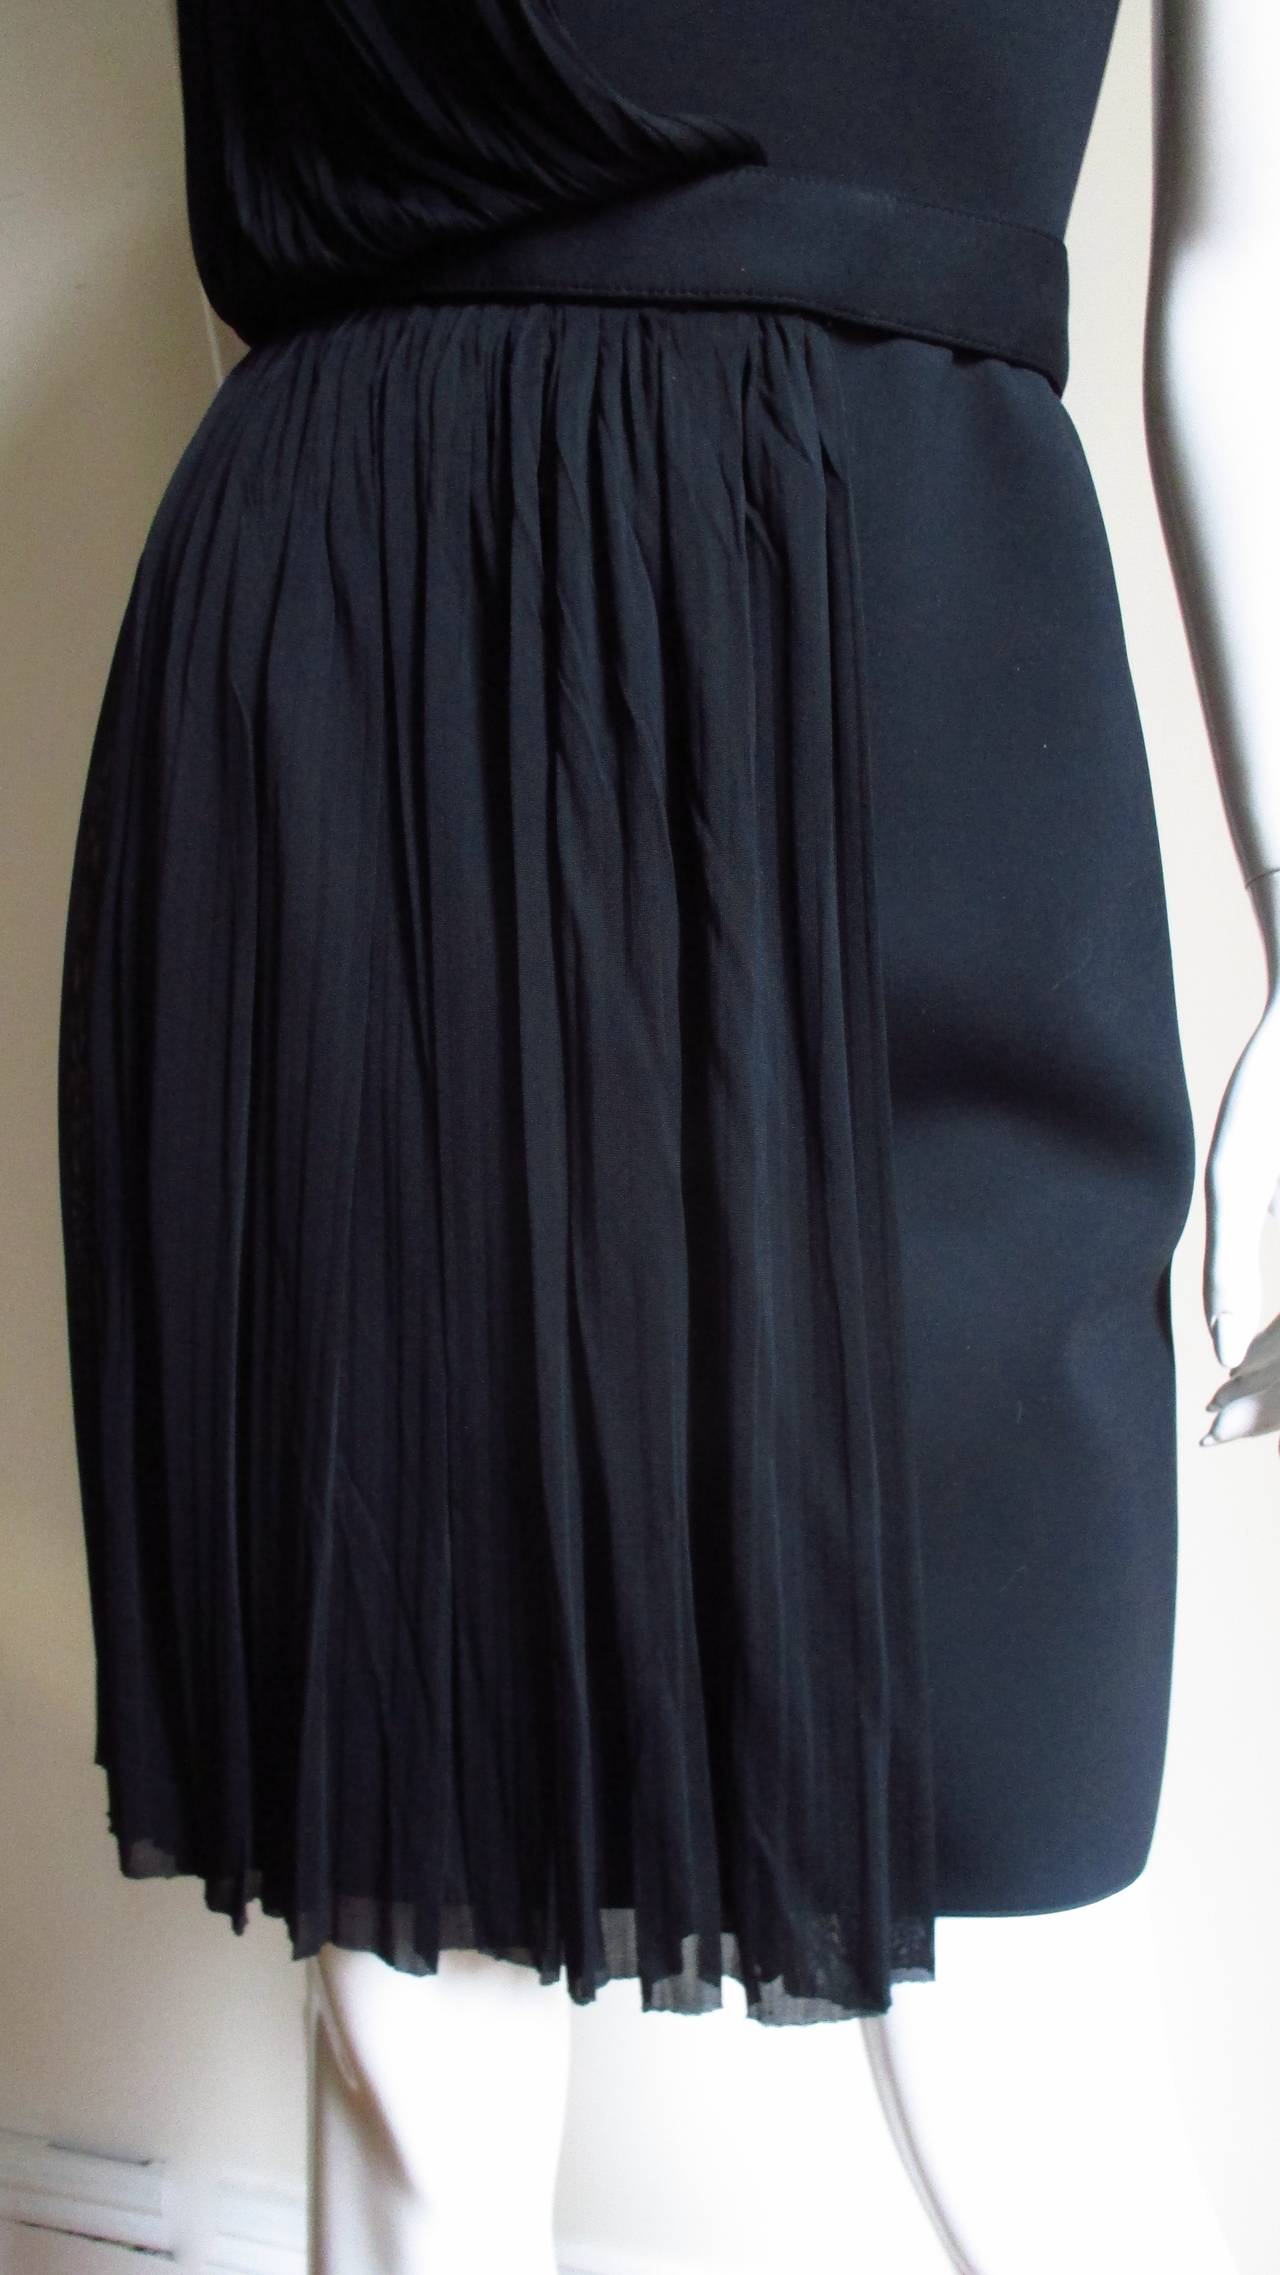 Versace Silk Draped Dress With Studs In New never worn Condition For Sale In New York, NY